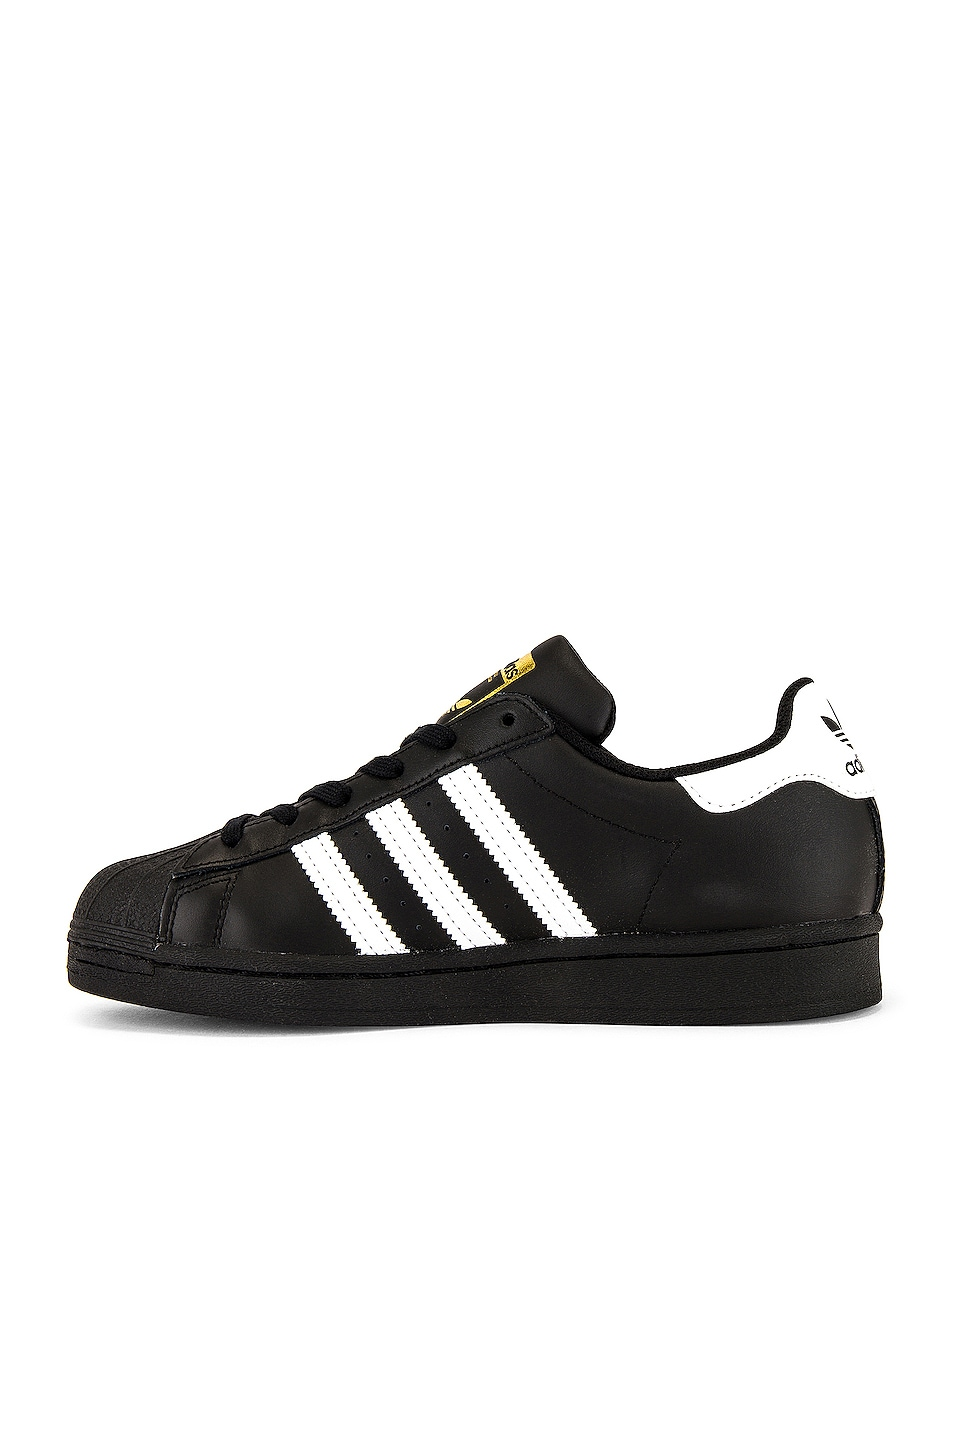 Image 4 of adidas Originals Superstar Foundation in Black & White & Black